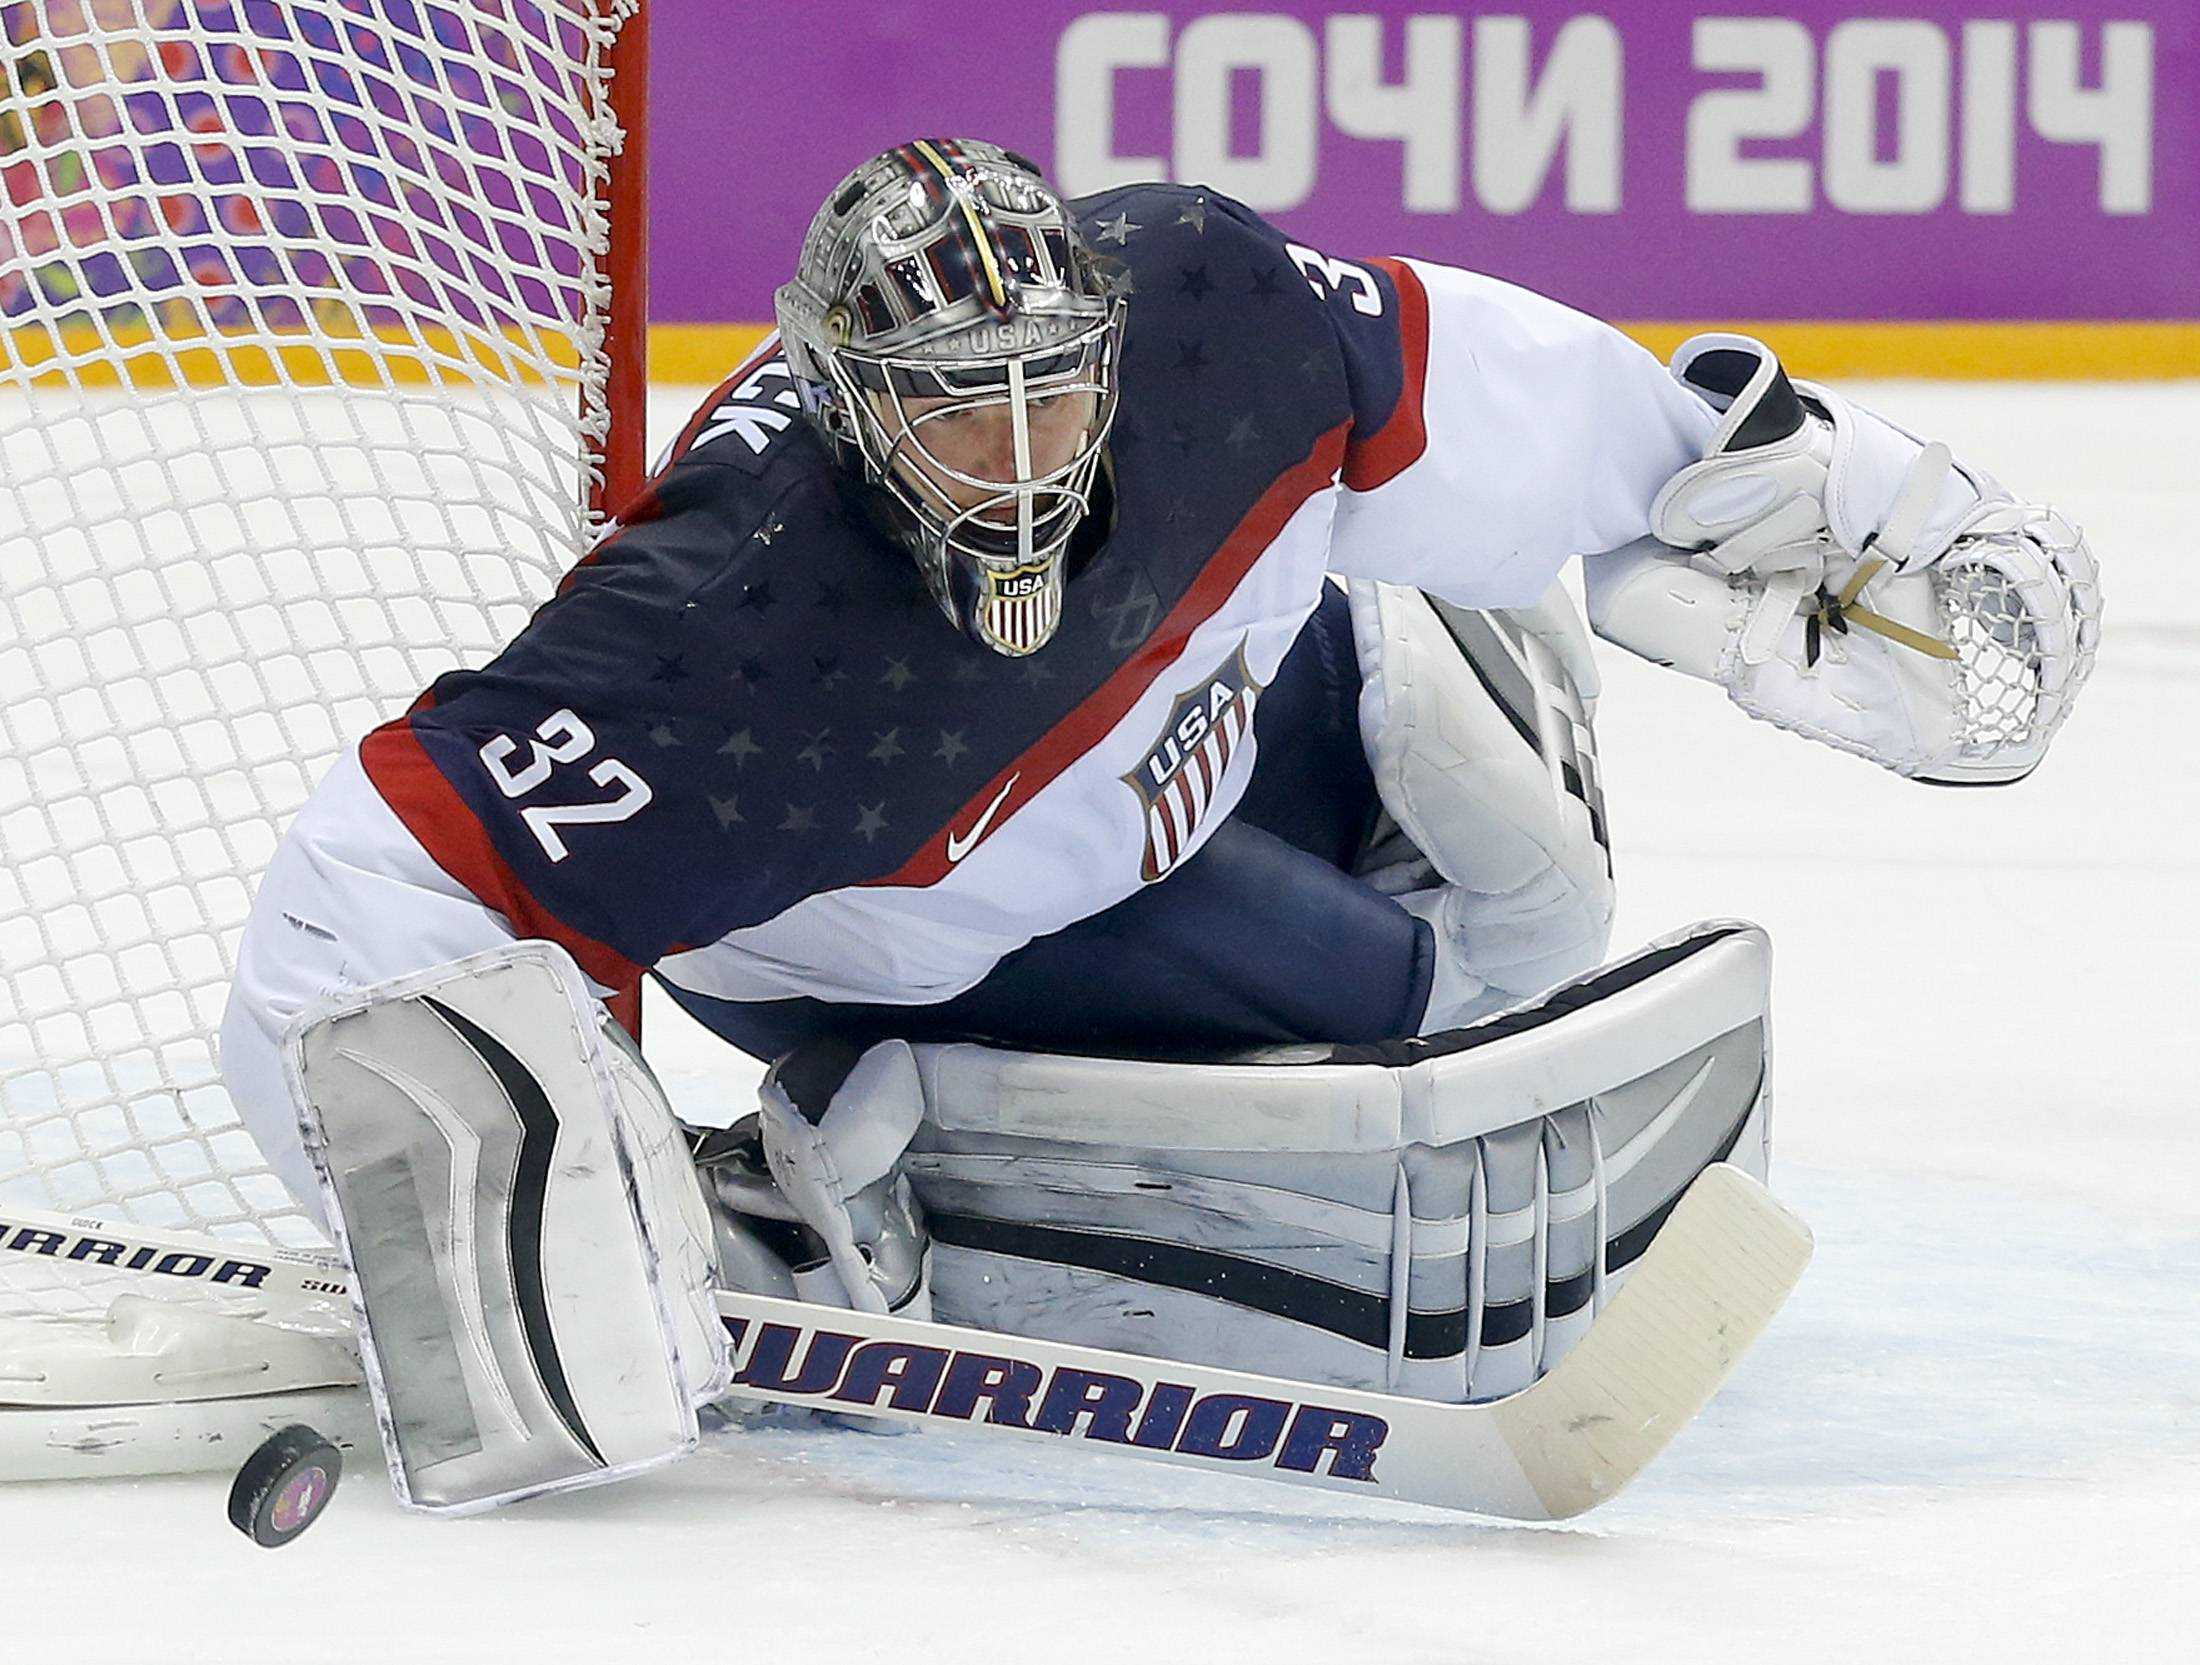 USA goaltender Jonathan Quick pushes off the puck to a teammate during the second period.